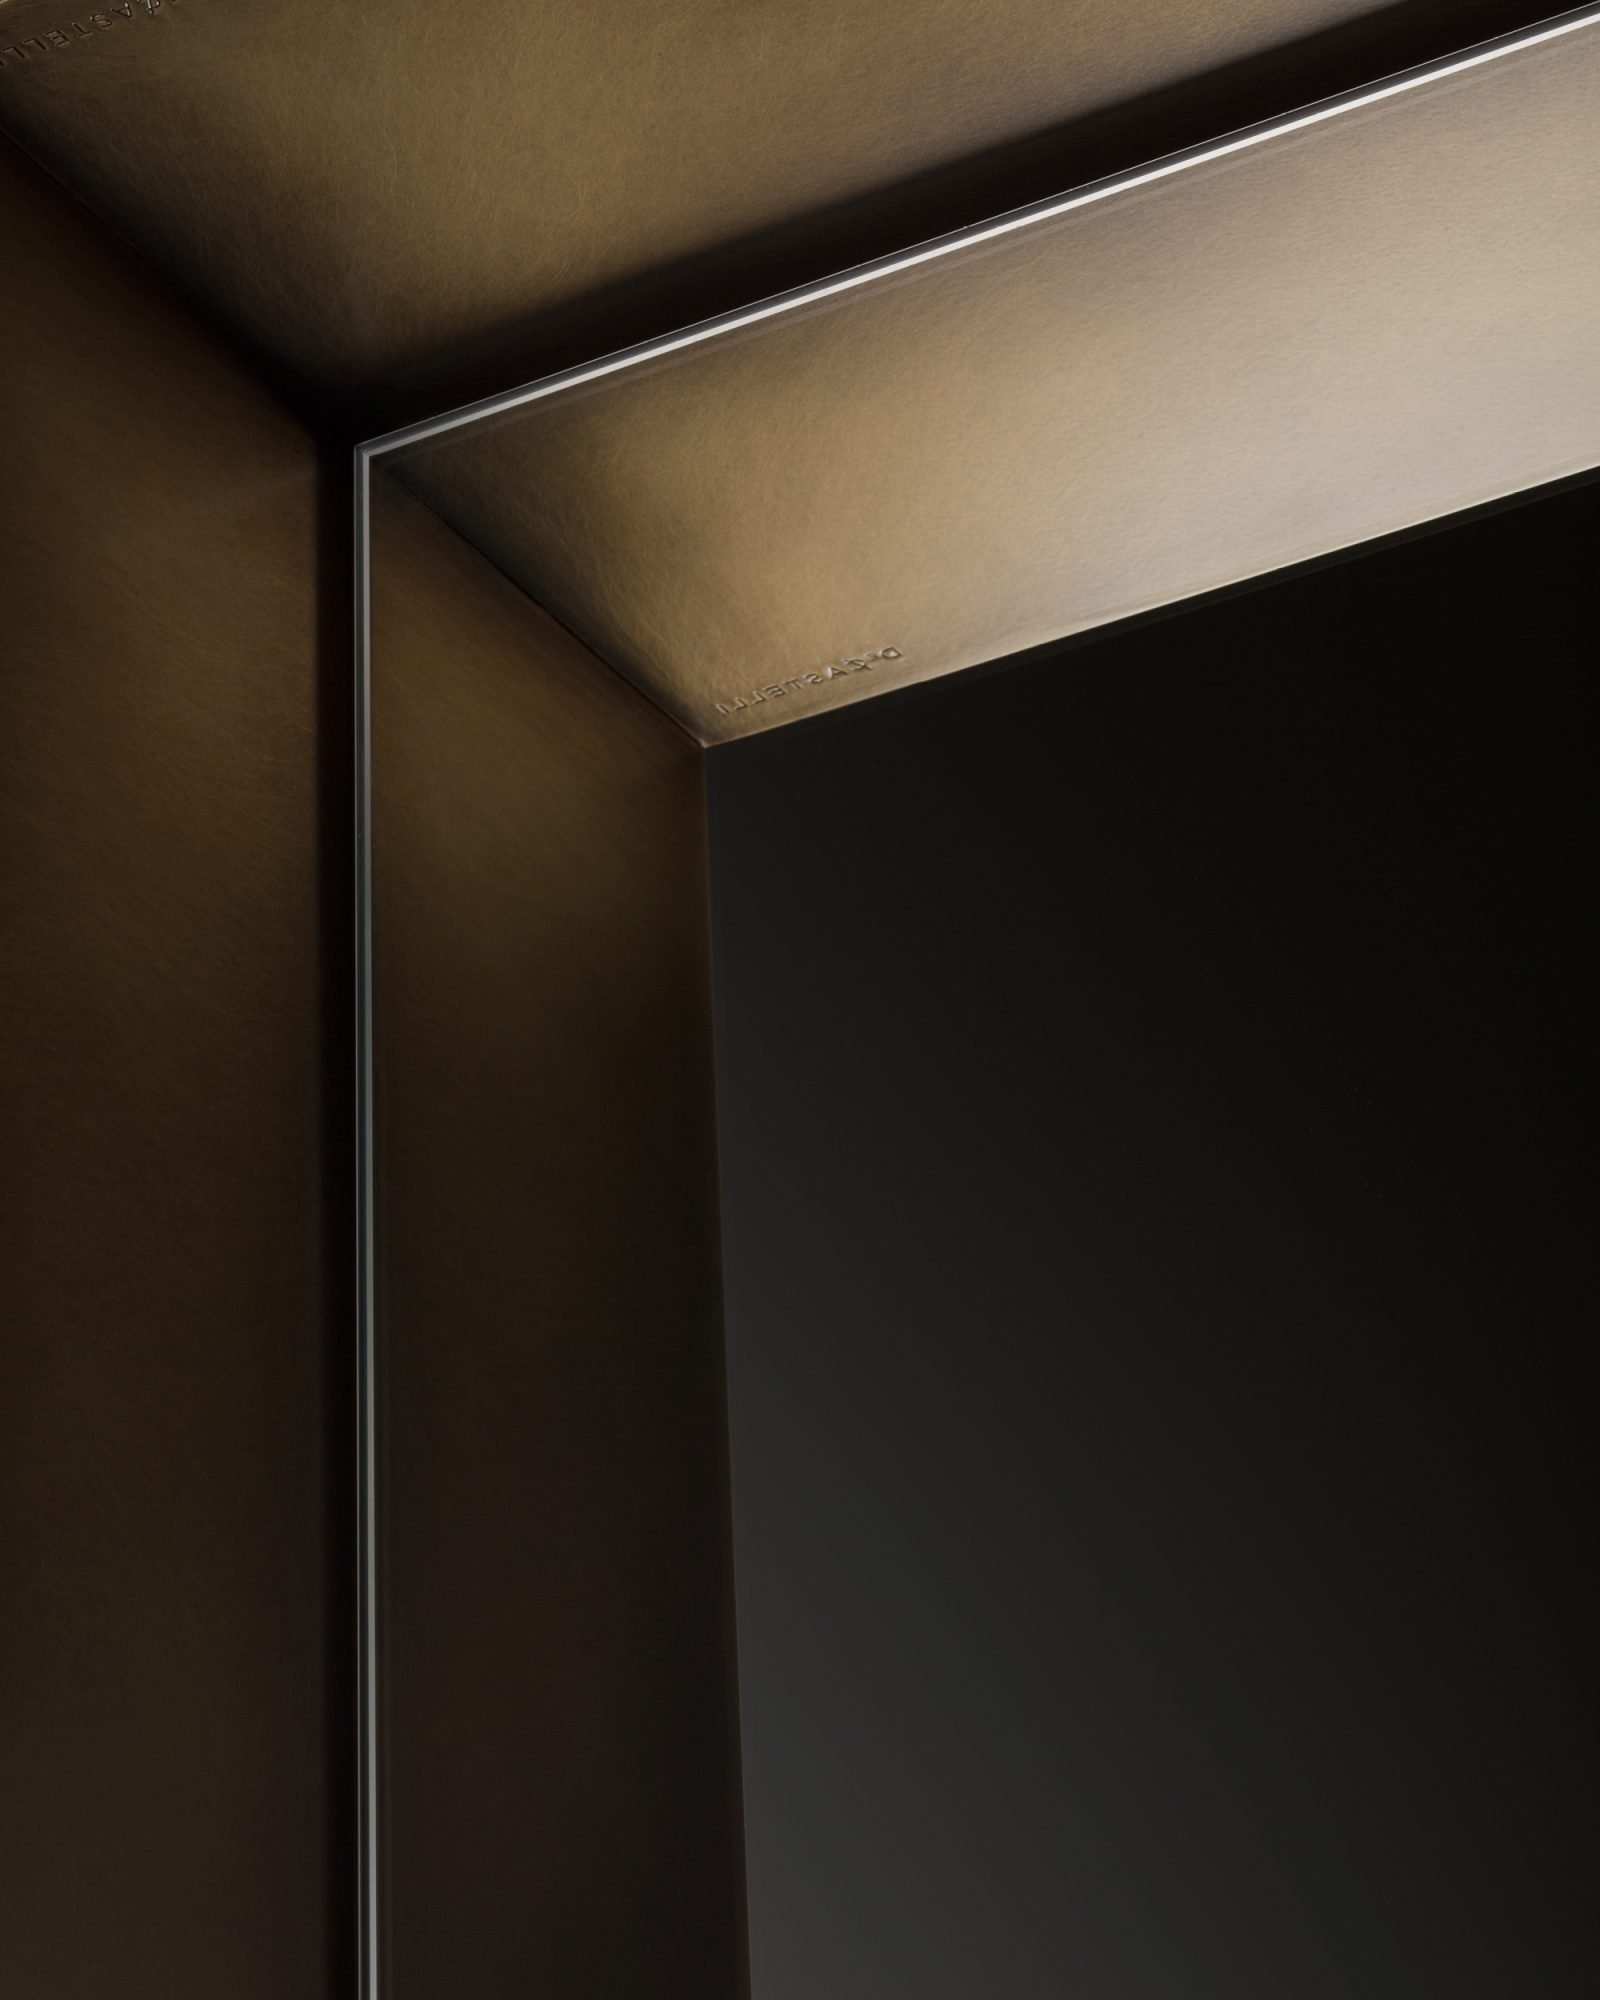 Frame Mirror from De Castelli, designed by Antonella Tesei